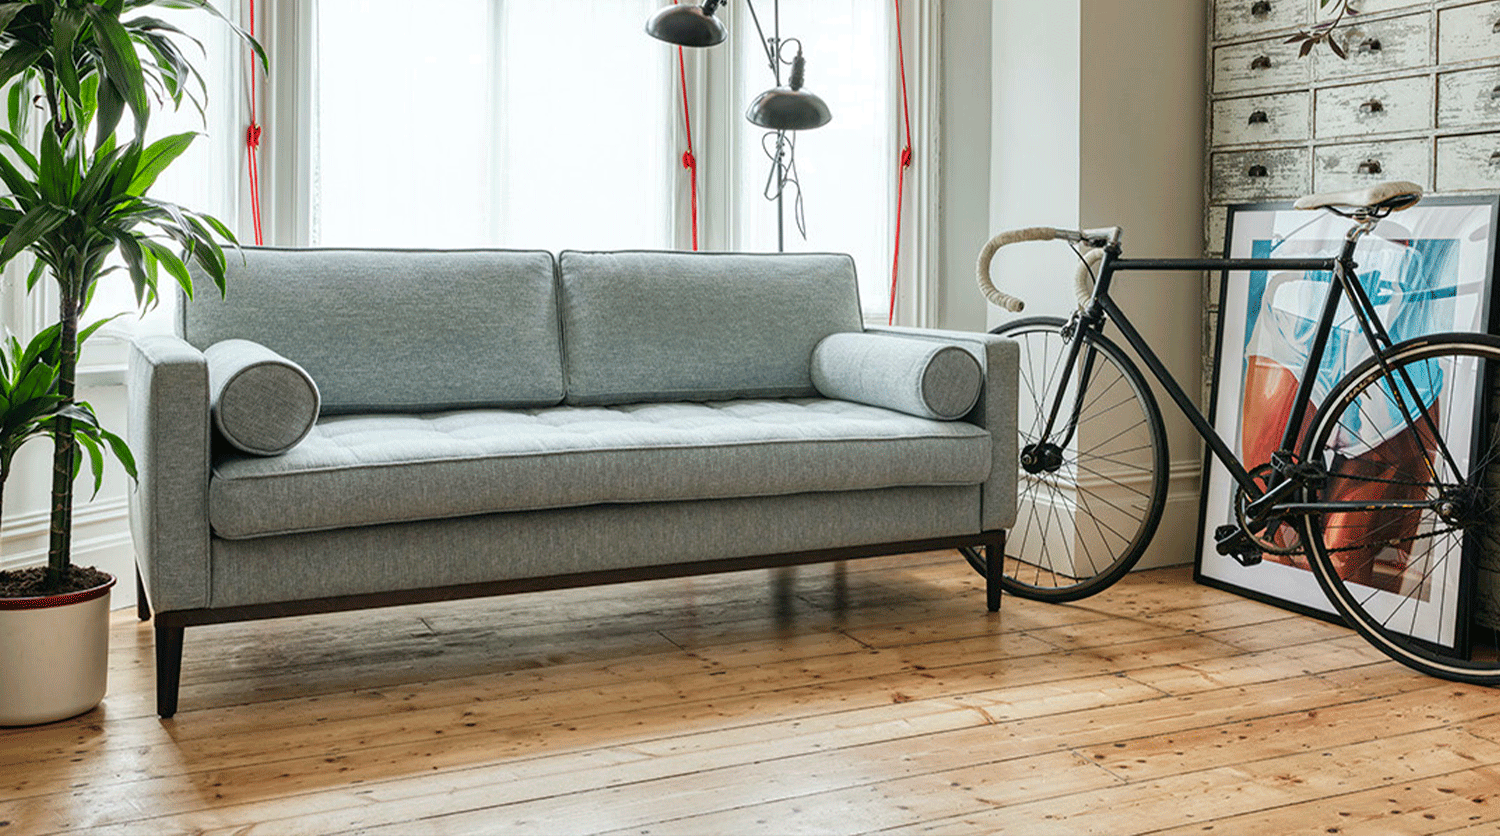 Model 02 3 Seater in Seaglass Linen